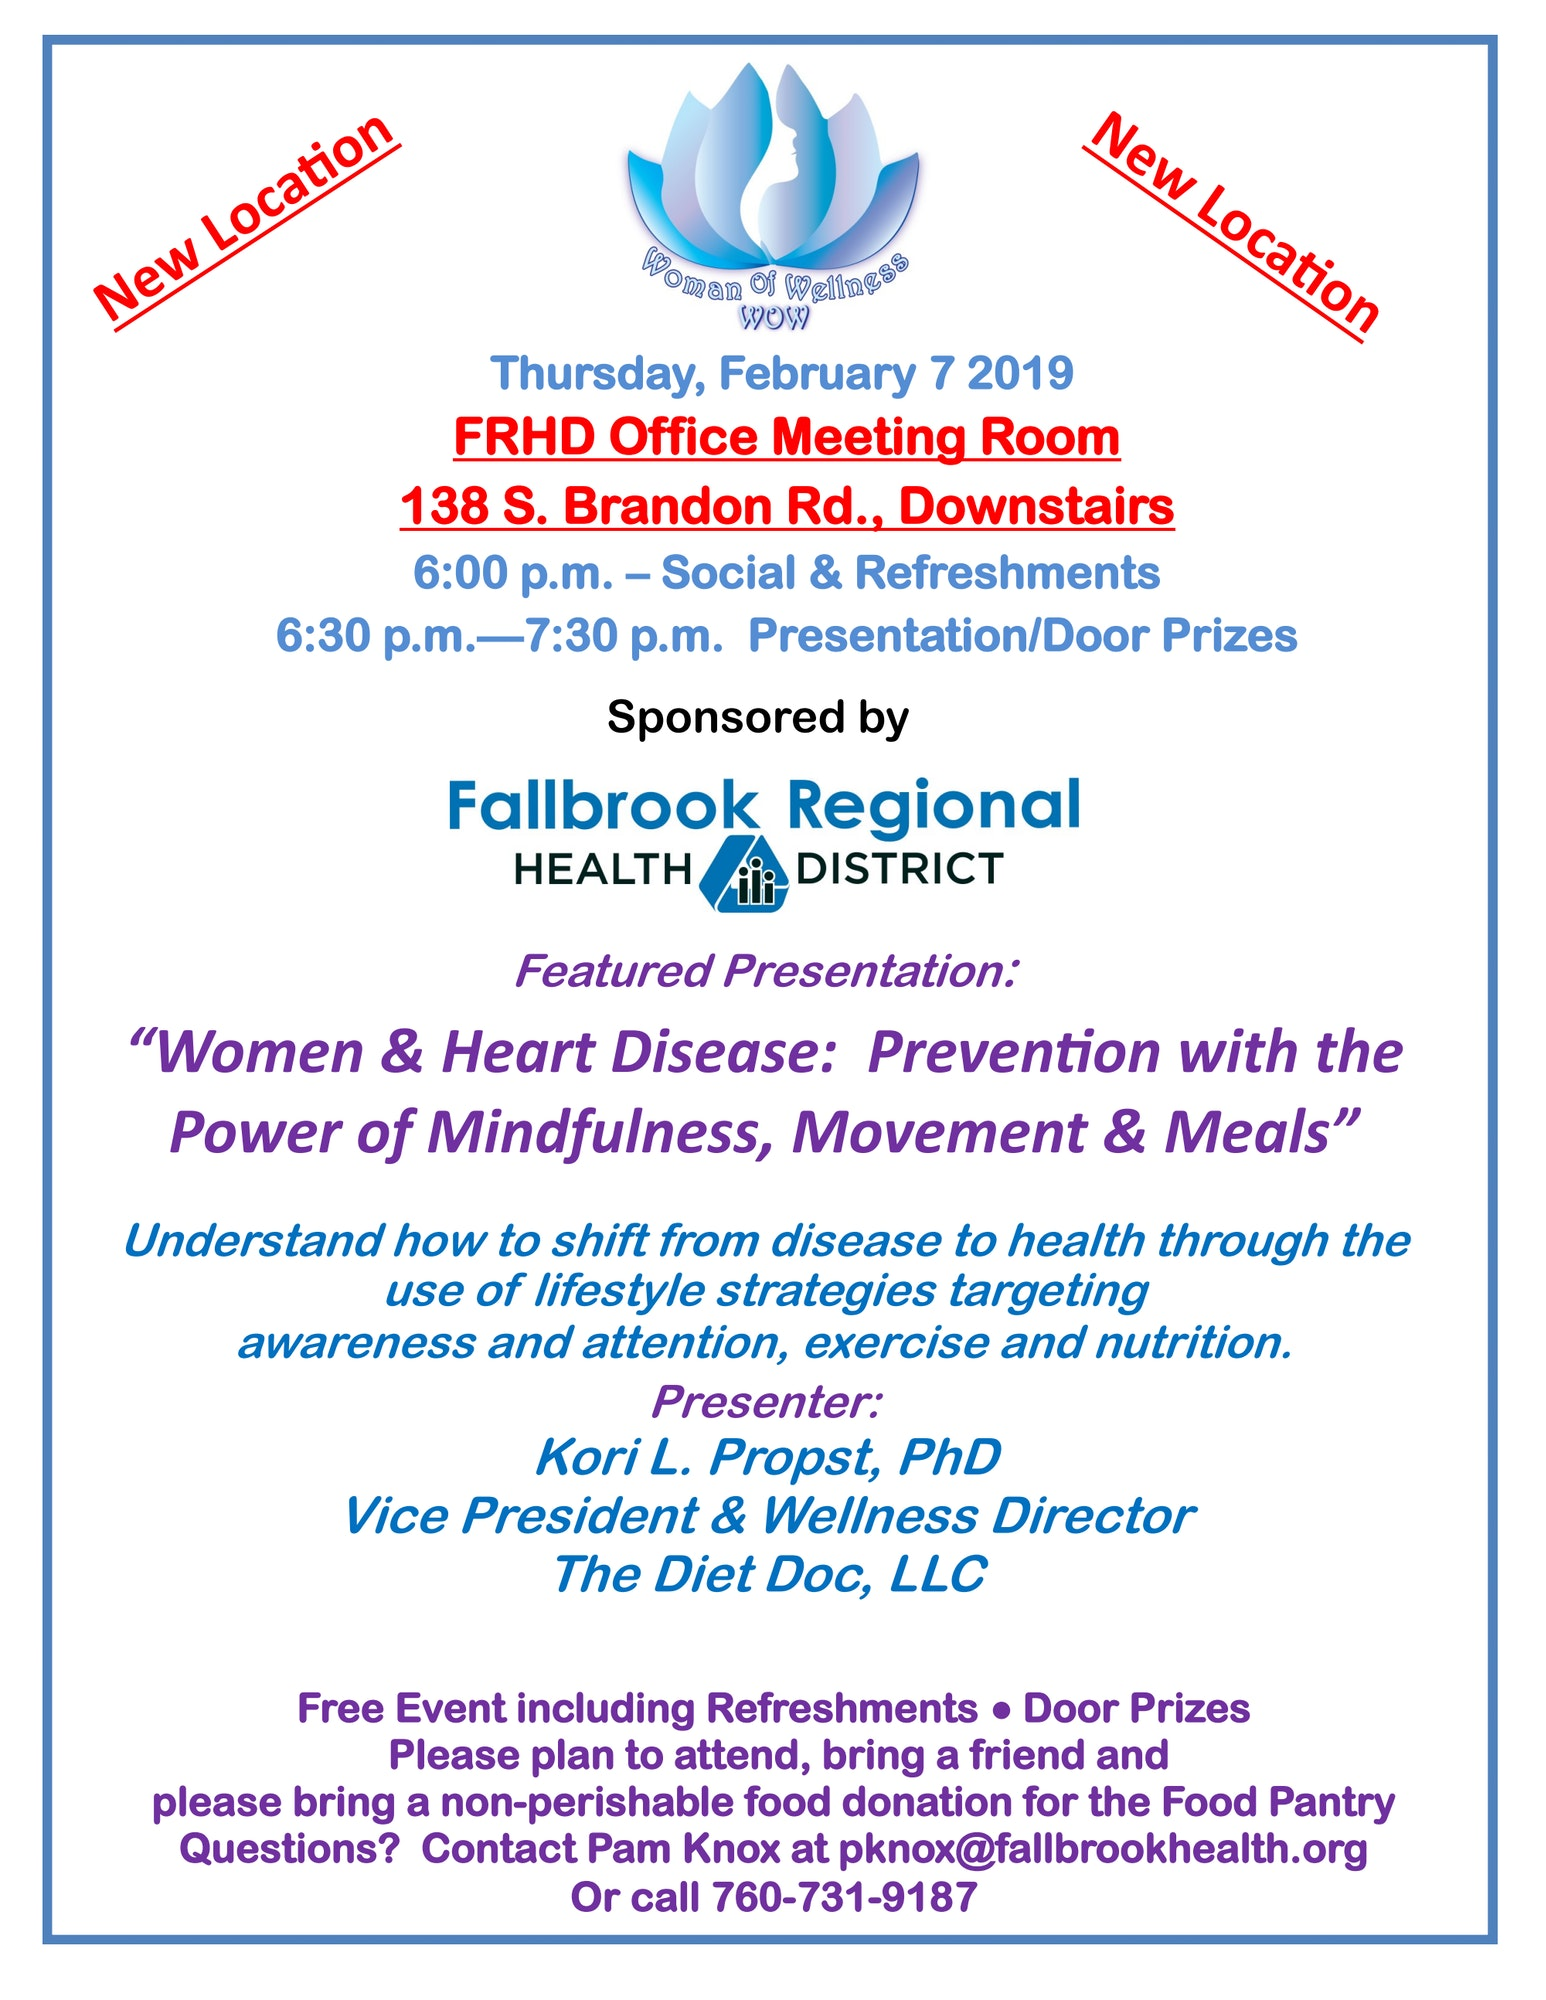 Women & Heart Disease:  Prevention with the Power of Mindfulness, Movement & Meals